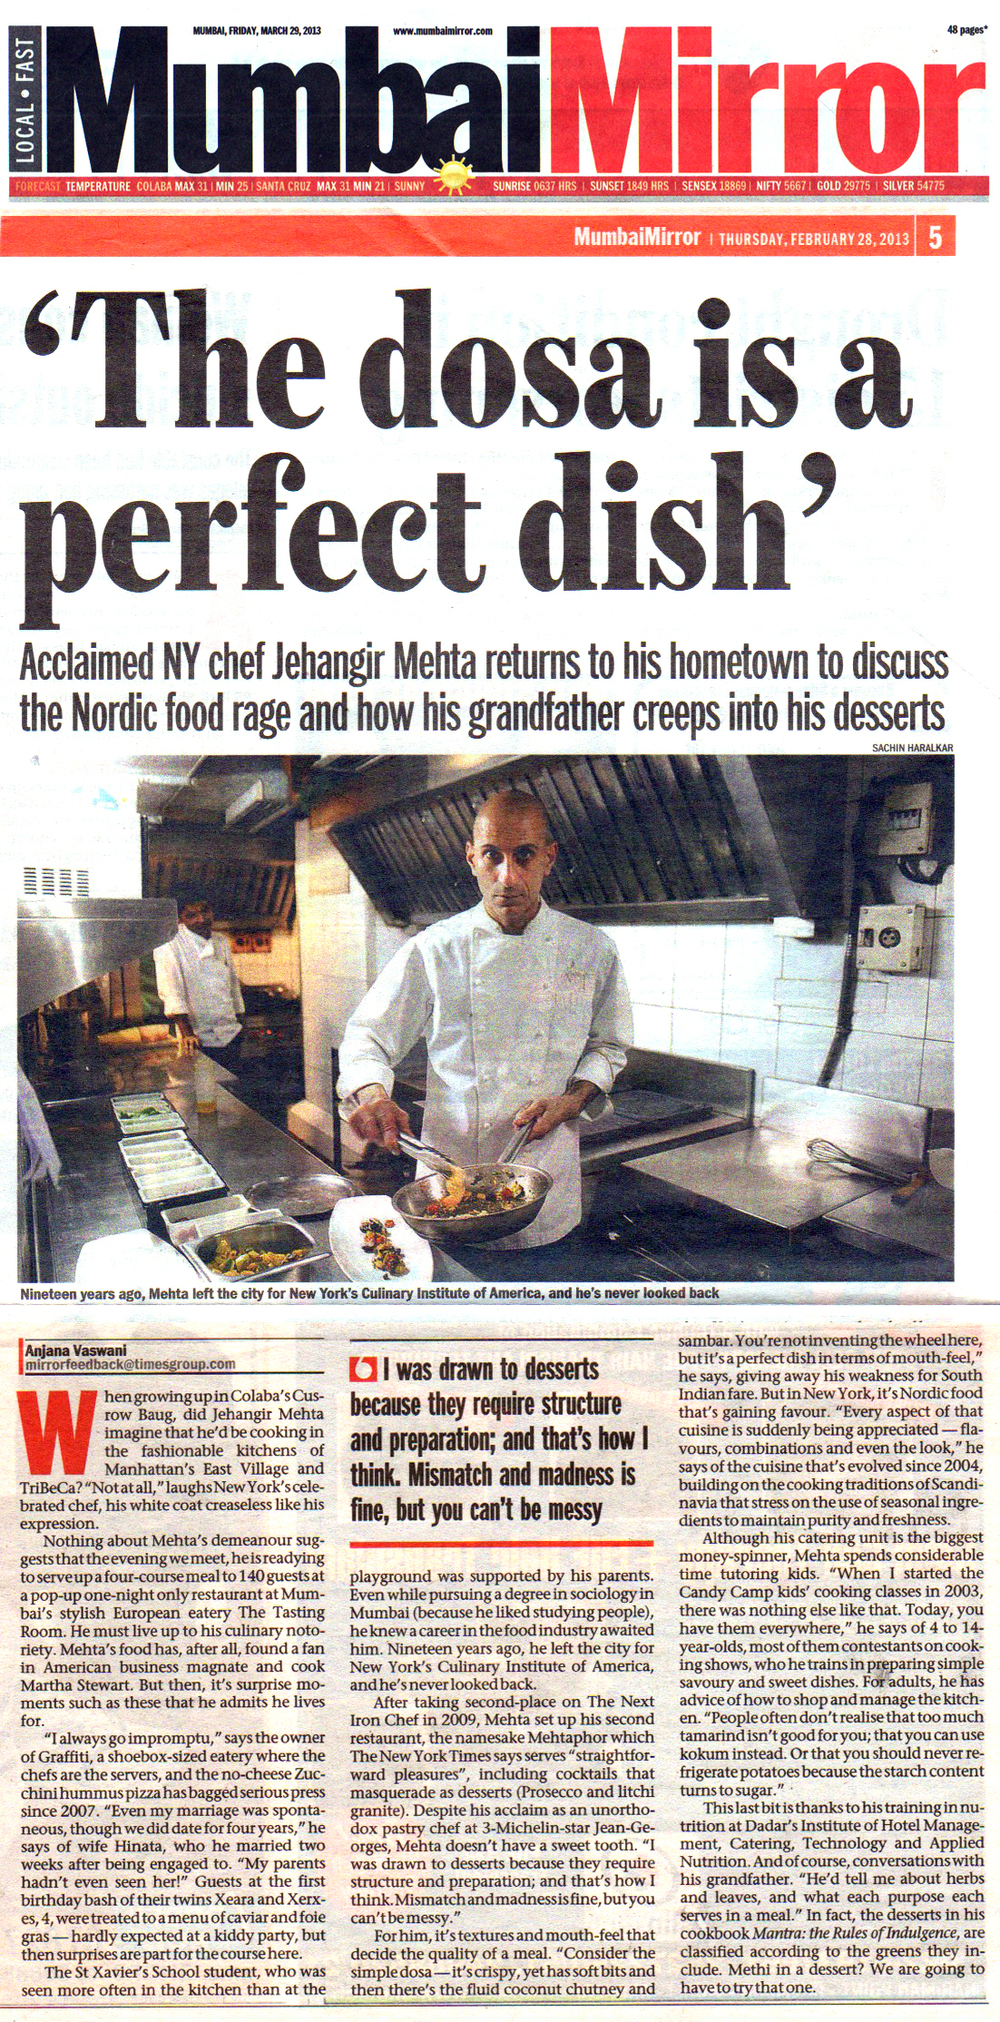 Mumbai Mirror (TOI) : May 2013